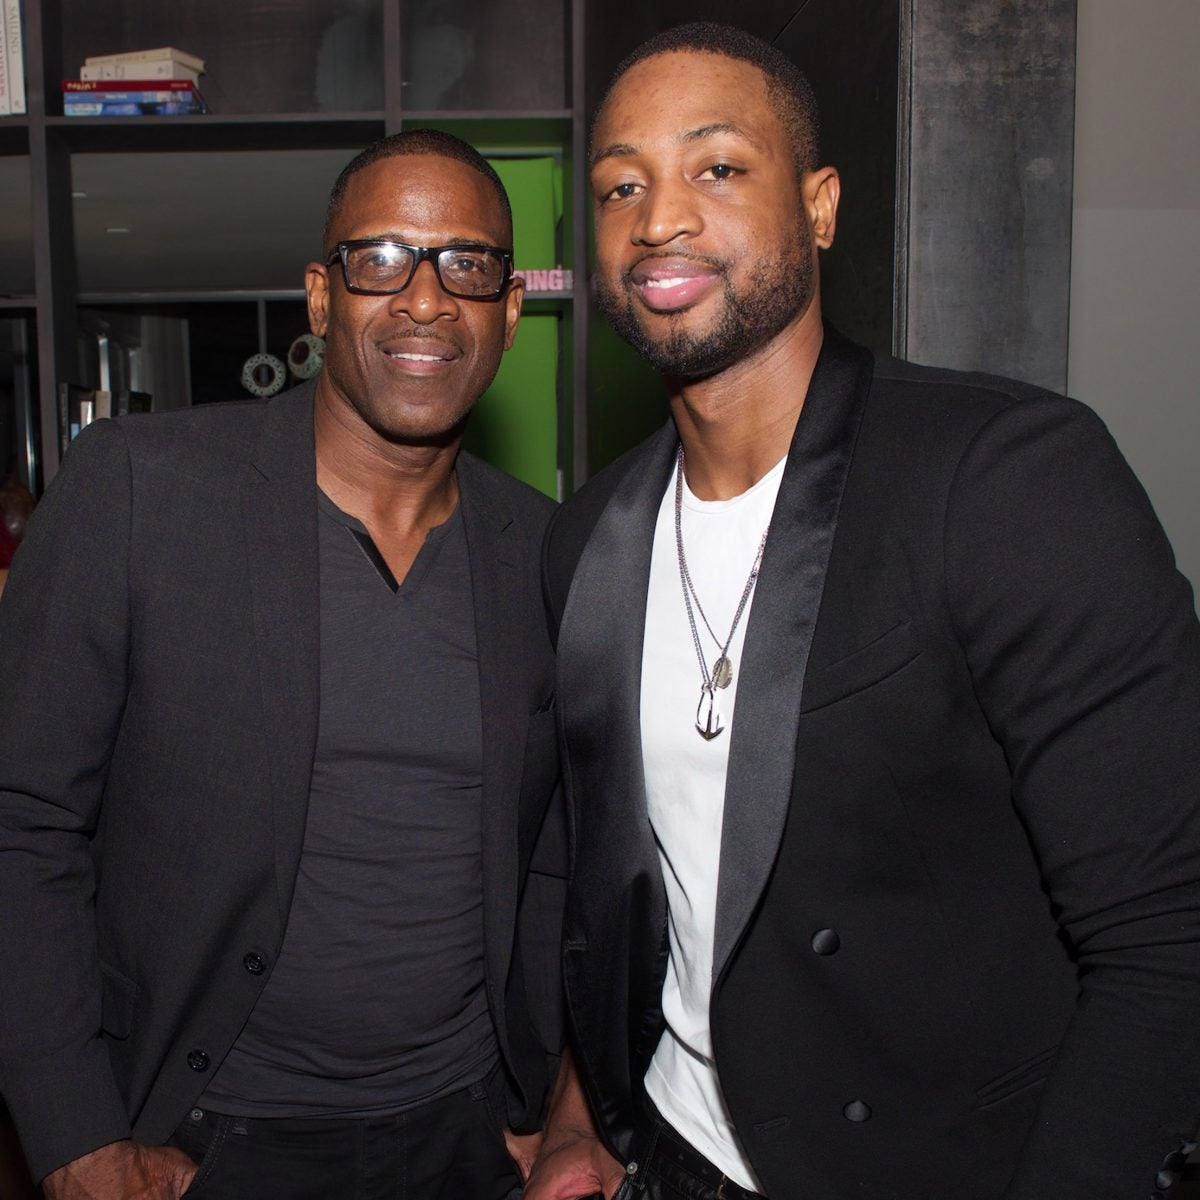 People Can't Believe This Is Dwyane Wade's Dad: 7 Photos Of Father And Son